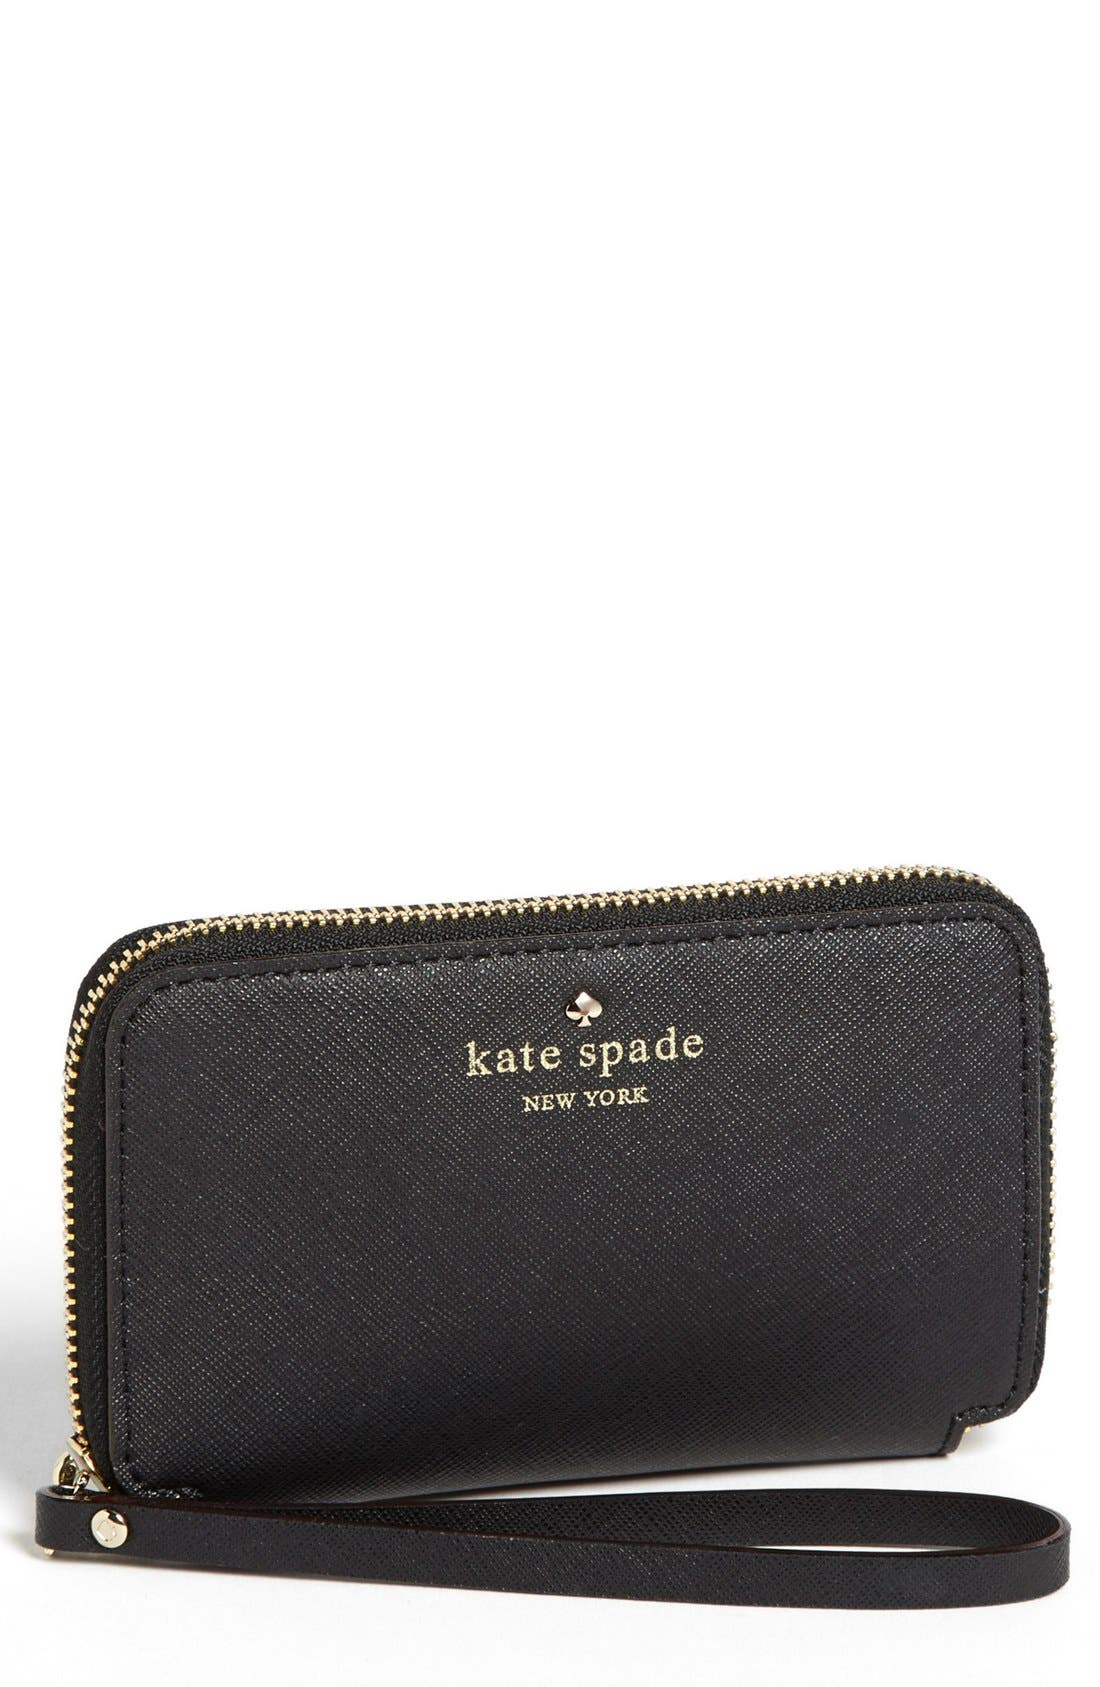 Main Image - kate spade new york 'cherry lane - louie' saffiano leather phone wallet